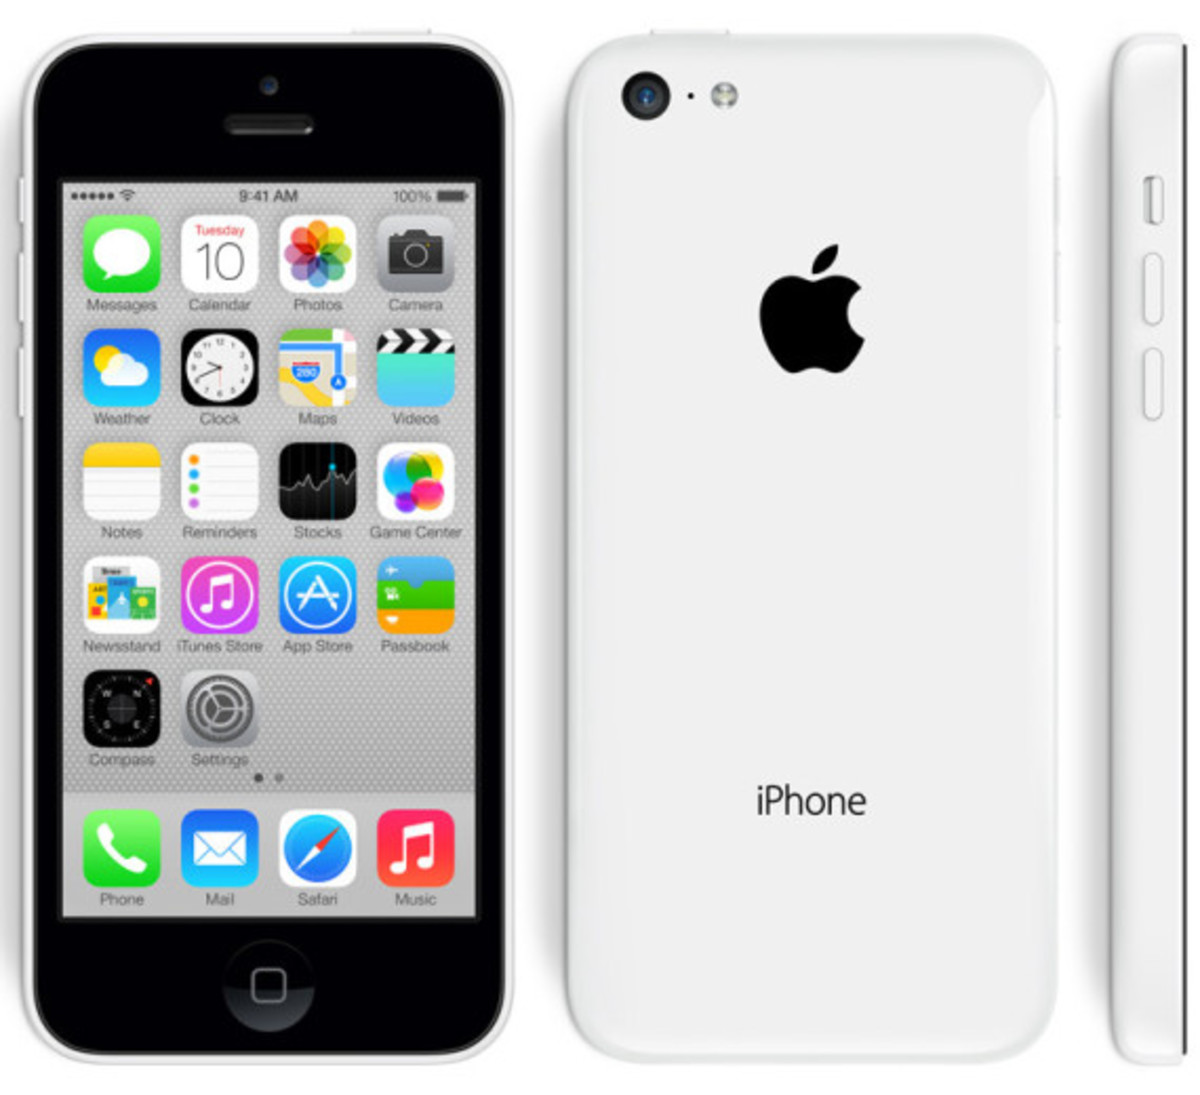 Apple iPhone 5C - Officially Unveiled - 12